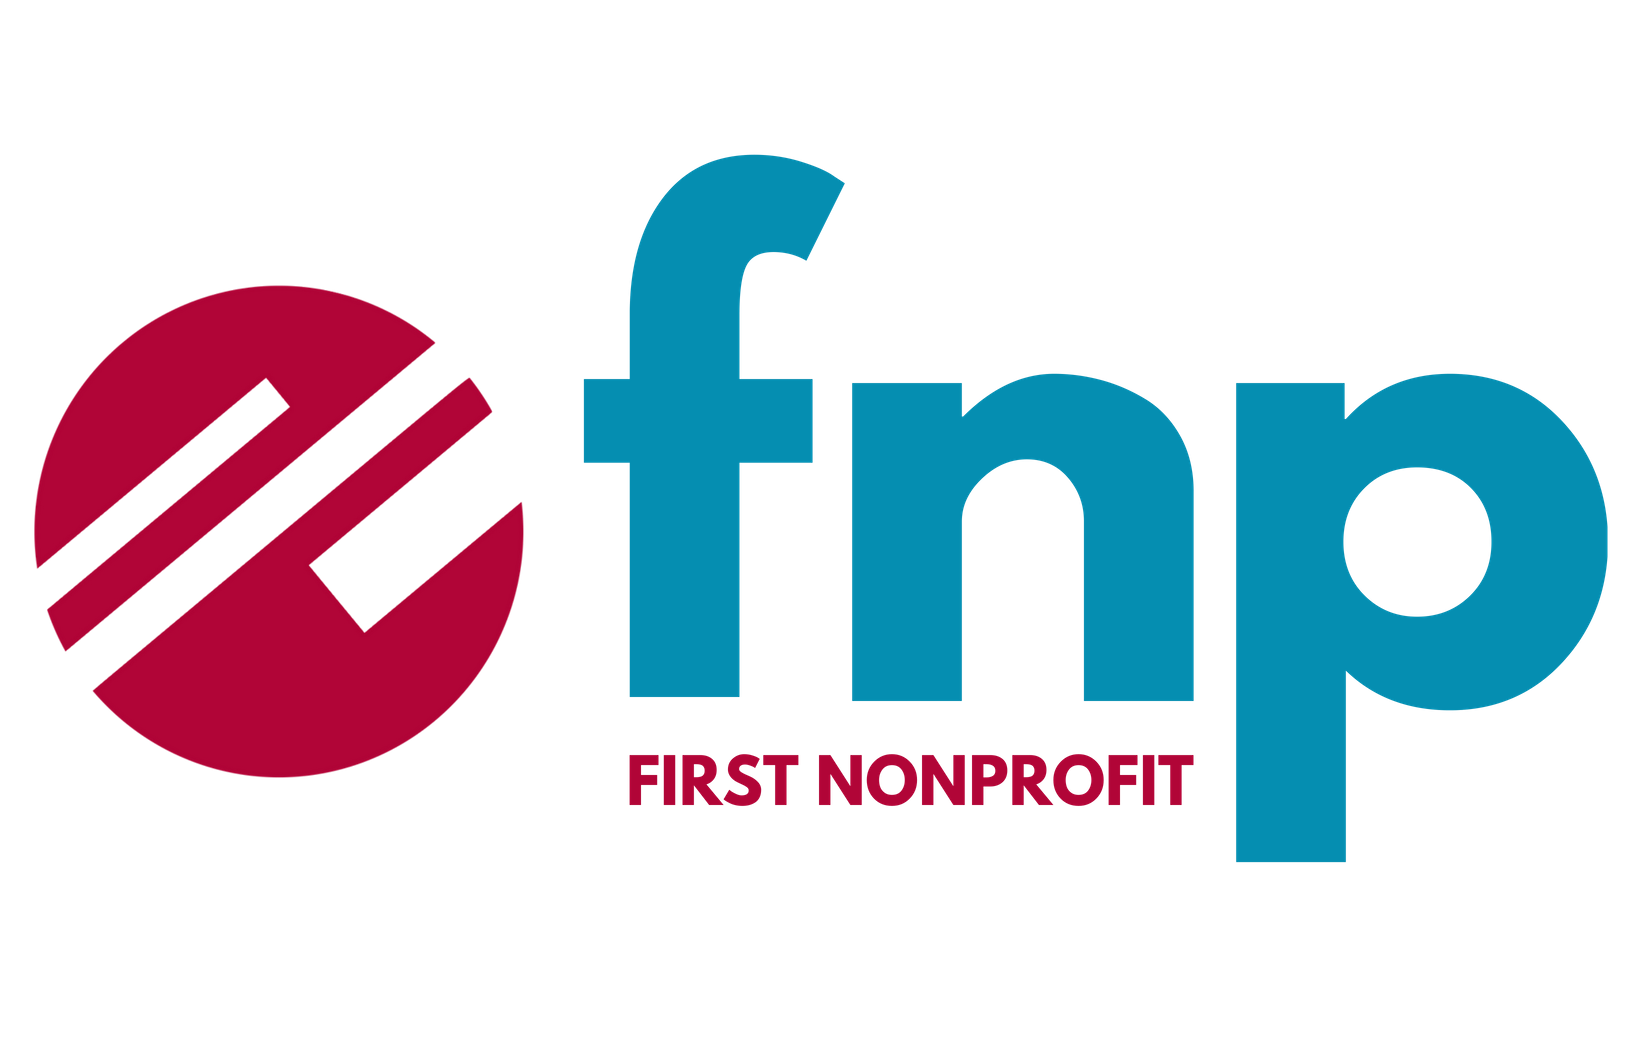 First Nonprofit